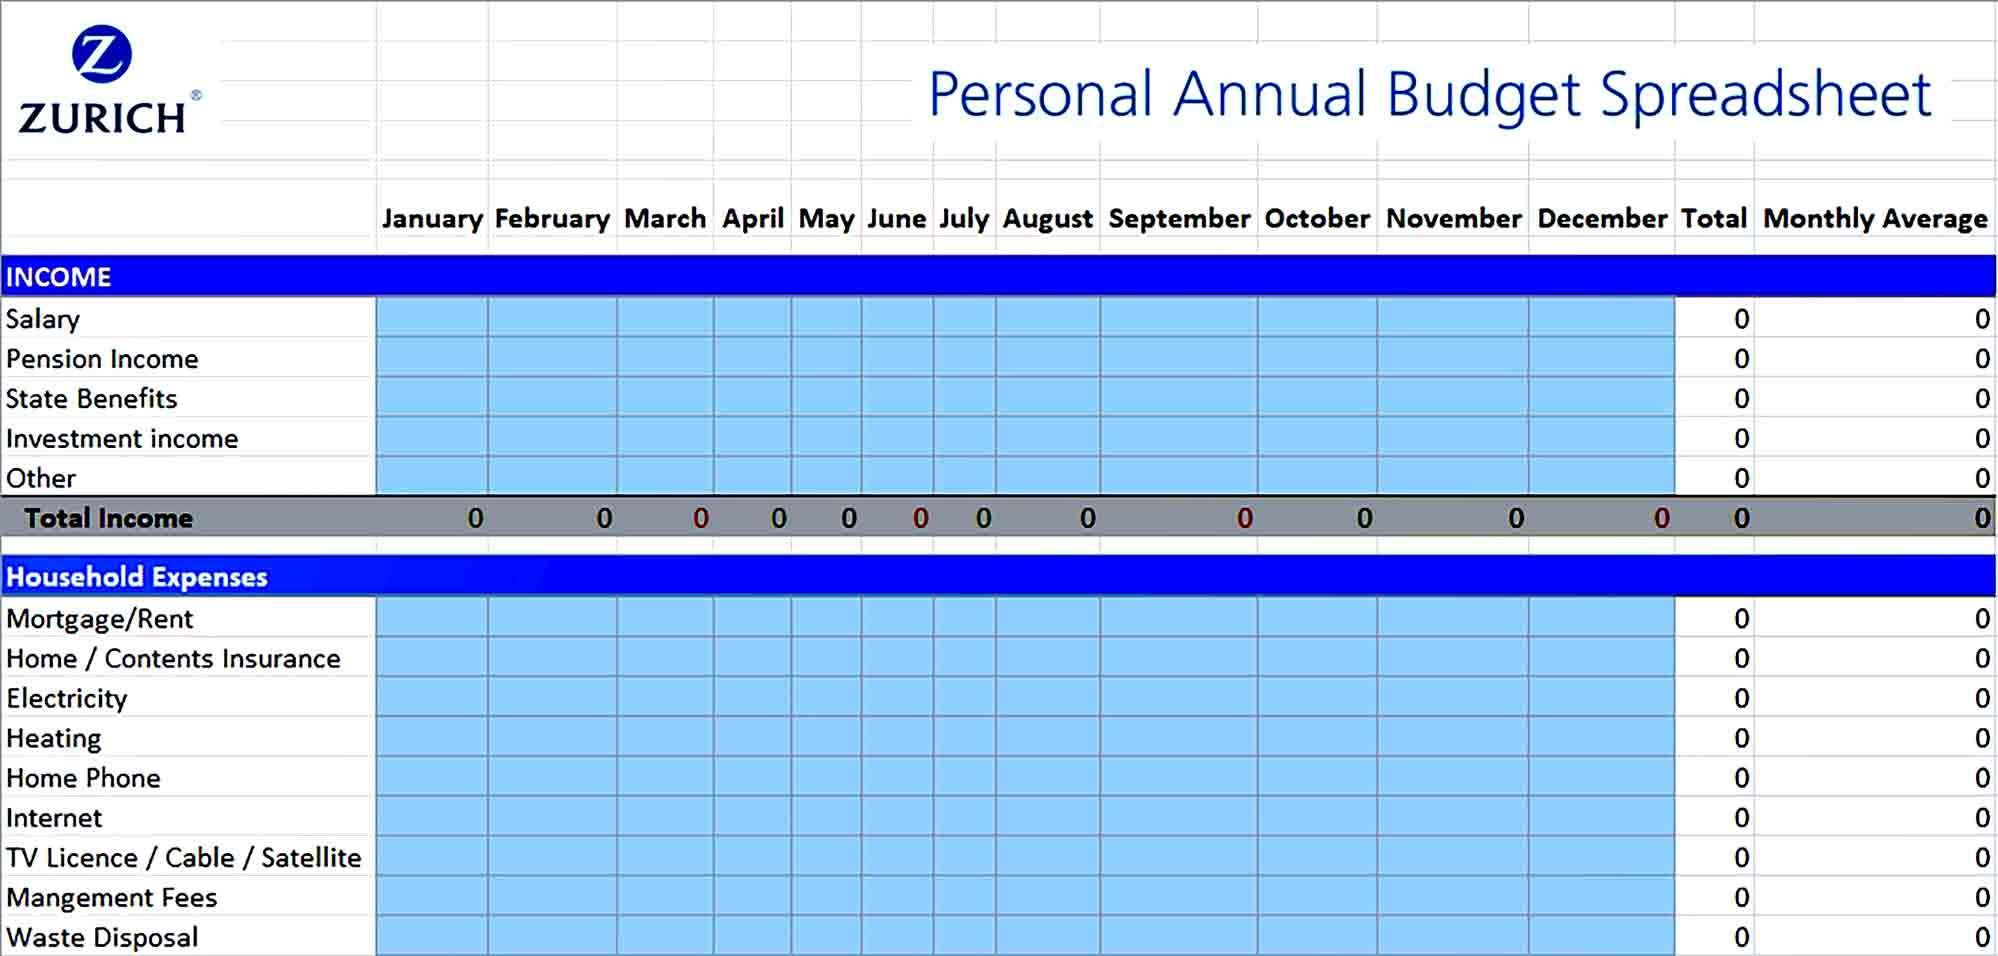 Sample Personal Annual Budget Spreadsheet